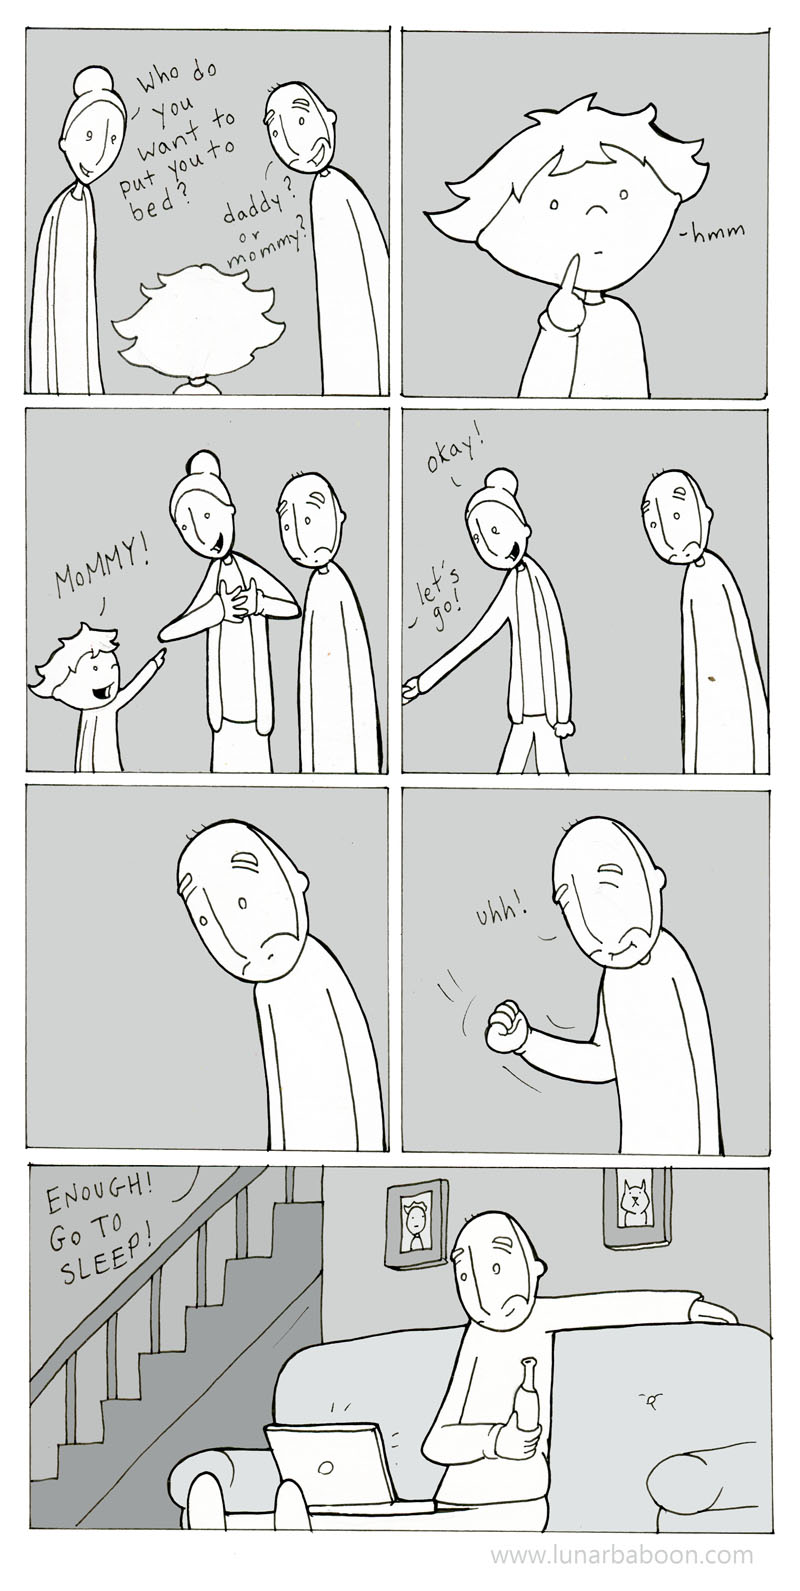 funny-picture-lunarbaboon-comics-son-sleep